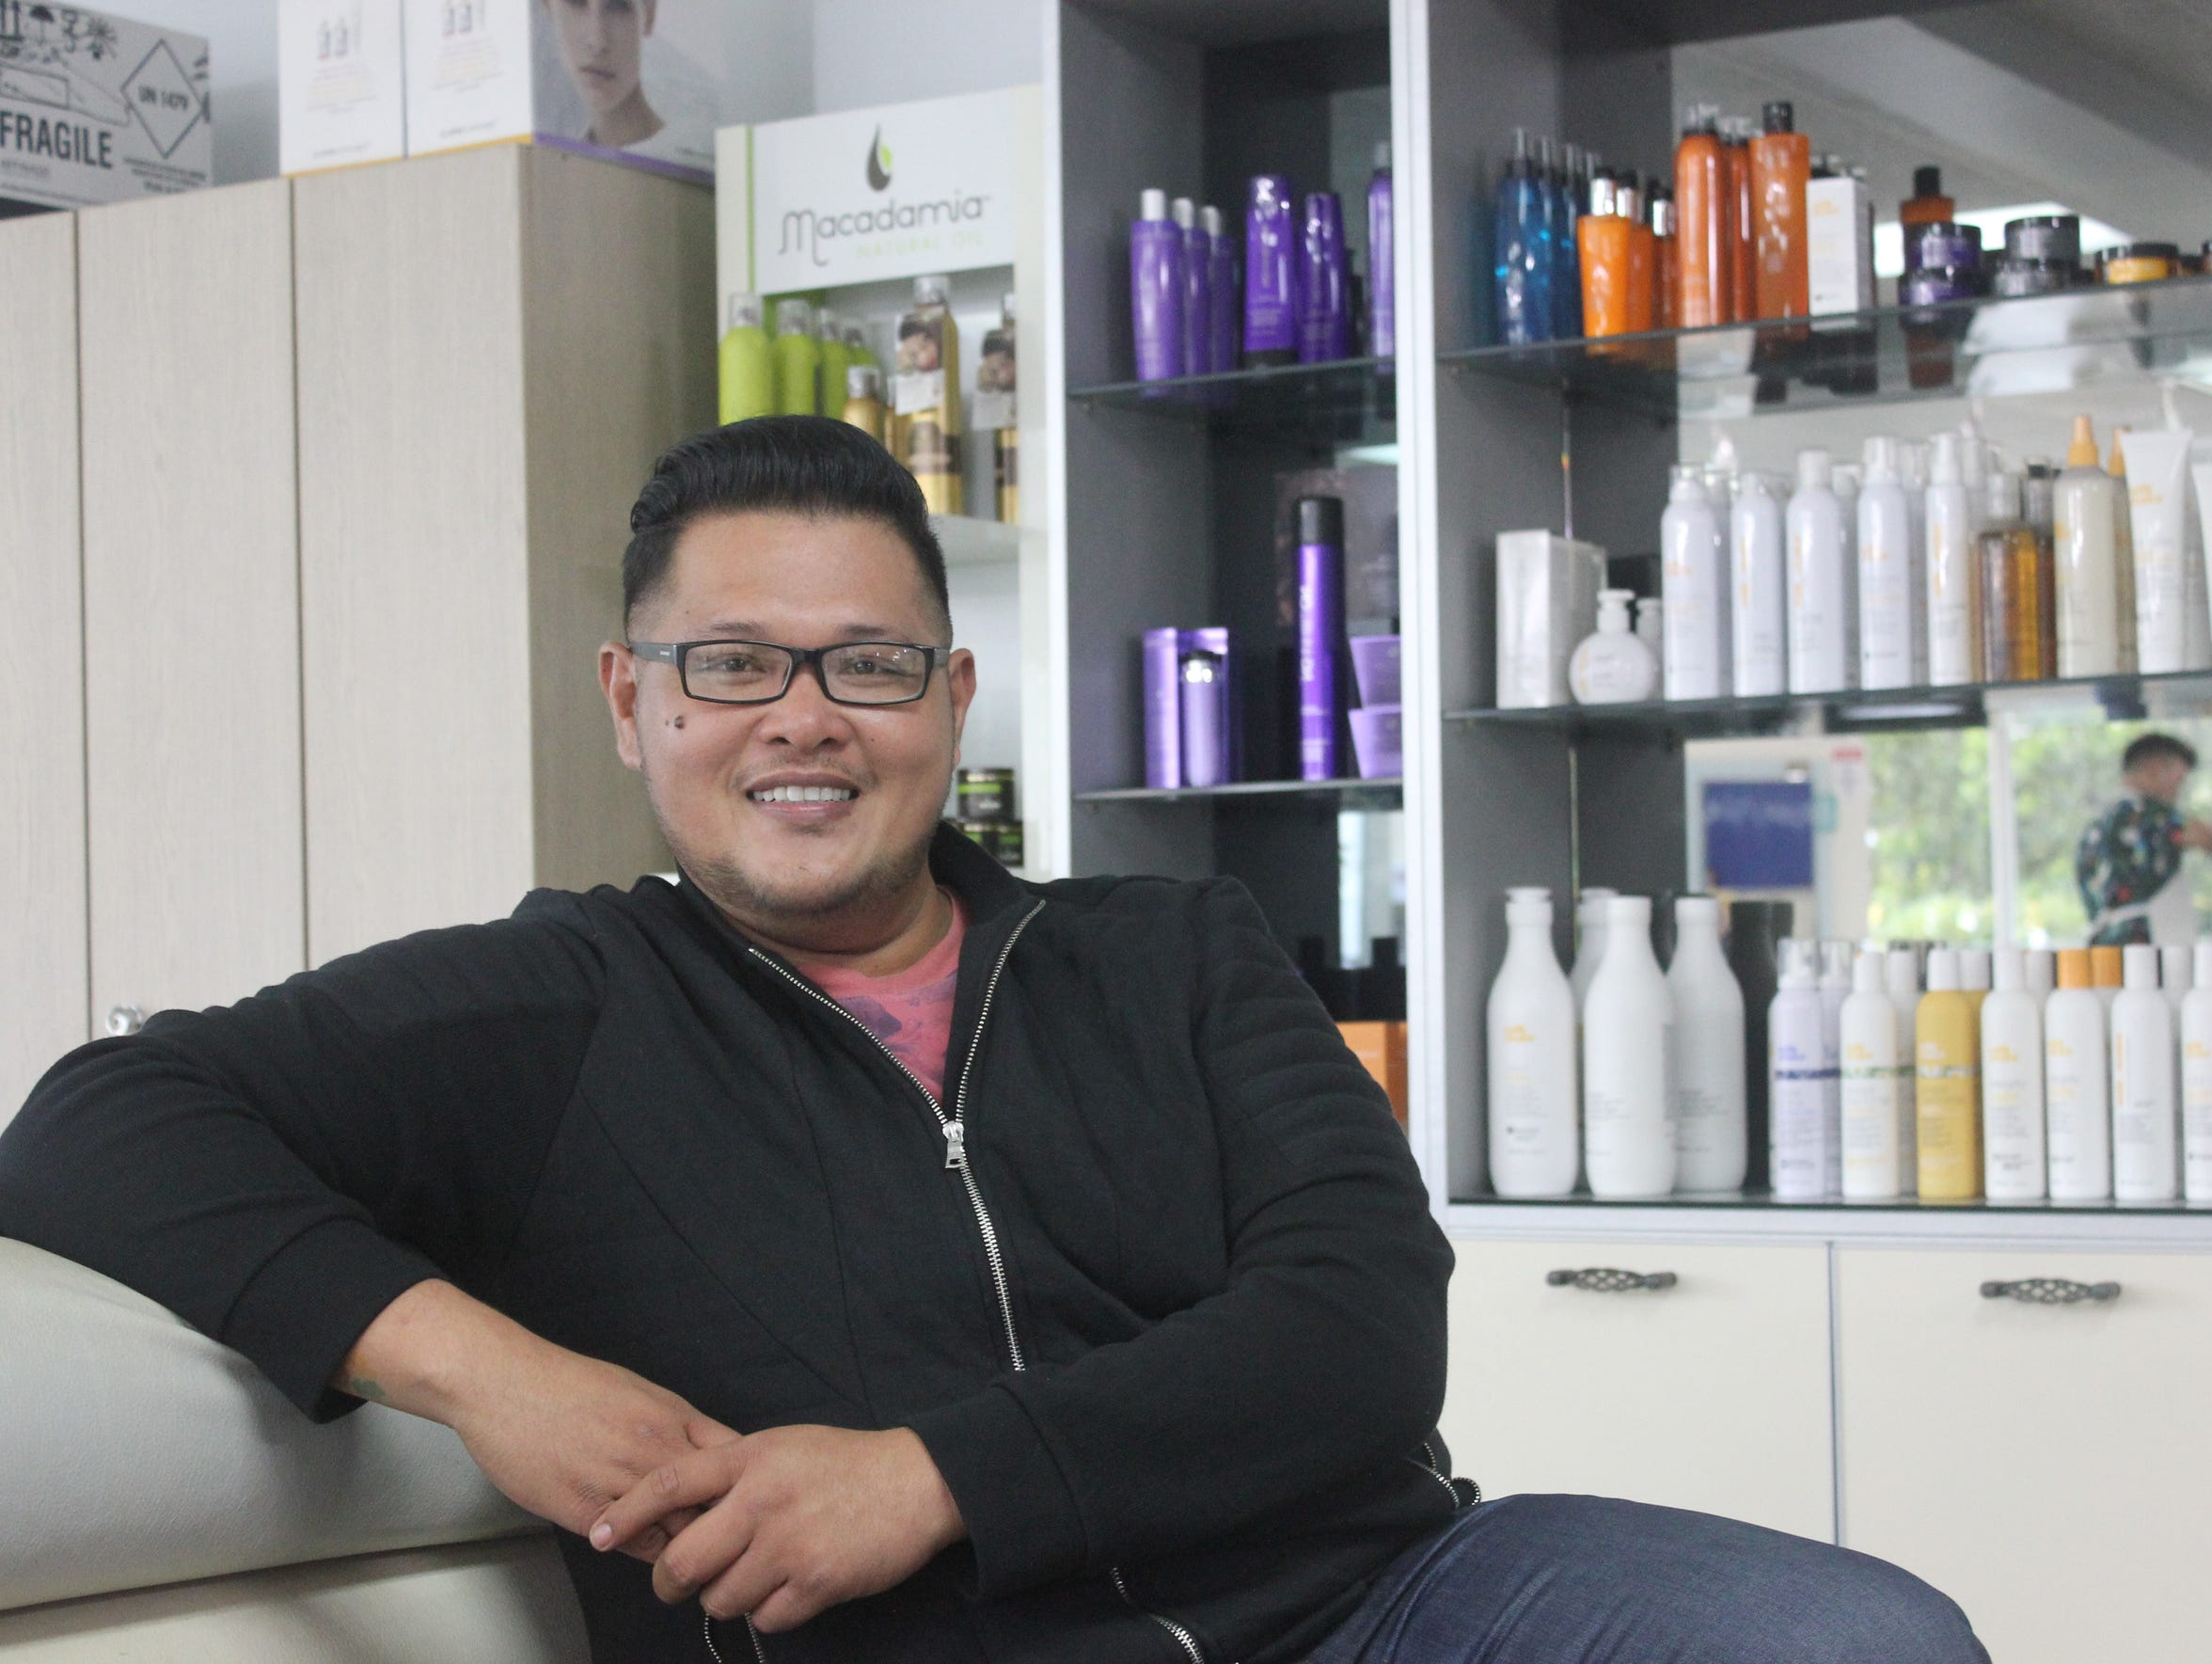 Andrew Hernandez at Oceans Salon wins Best Hair Stylist.